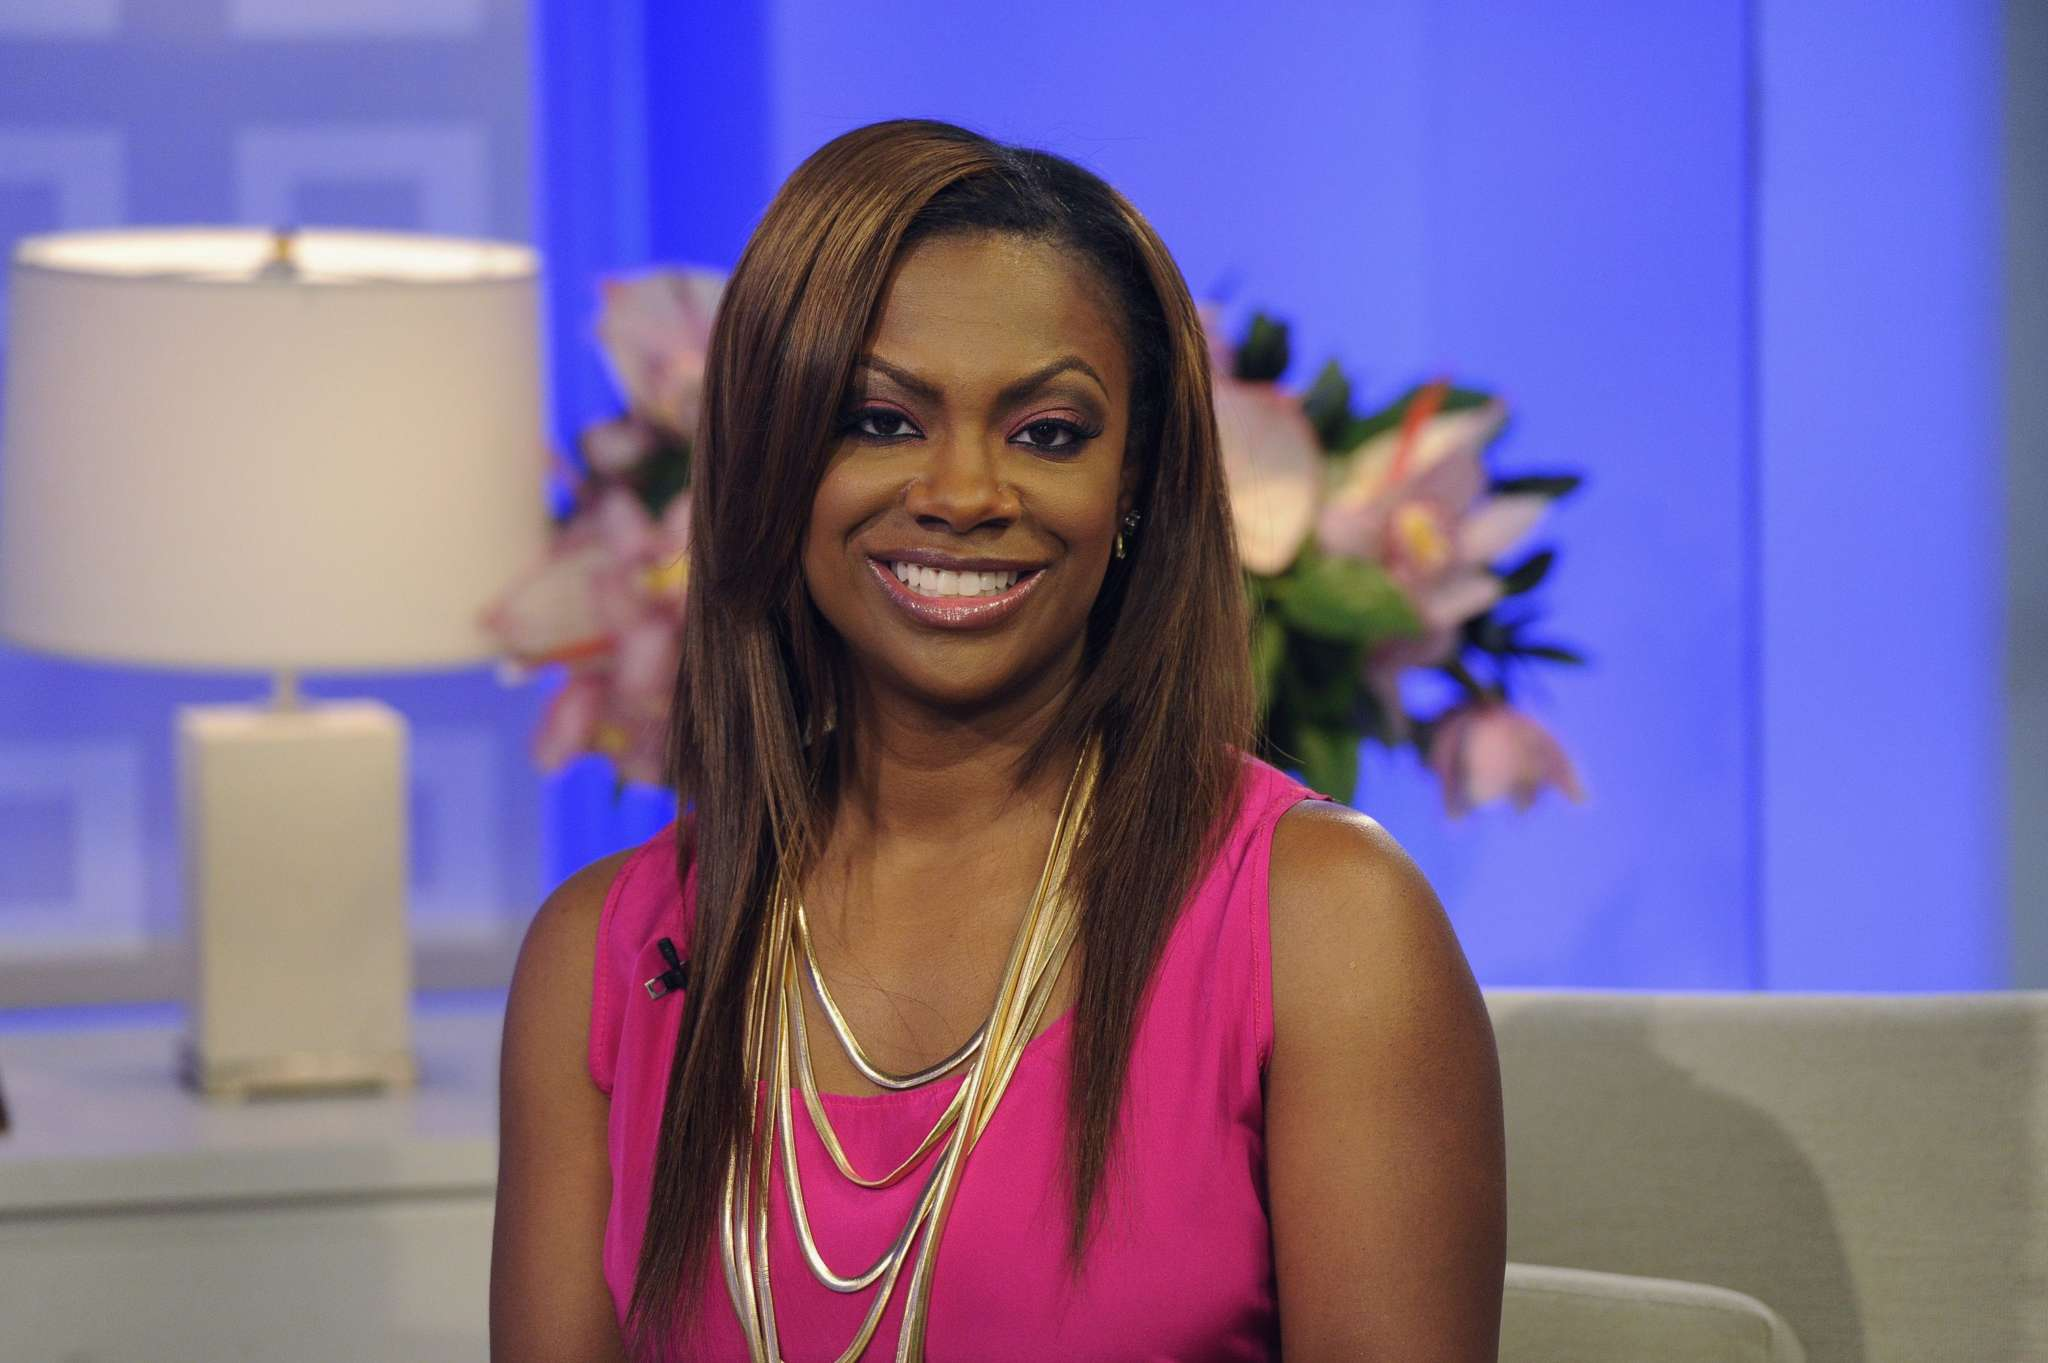 Kandi Burruss Has Some Movie Suggestions For Her Fans As She Updates Them On Her Life - Check Out Her Video